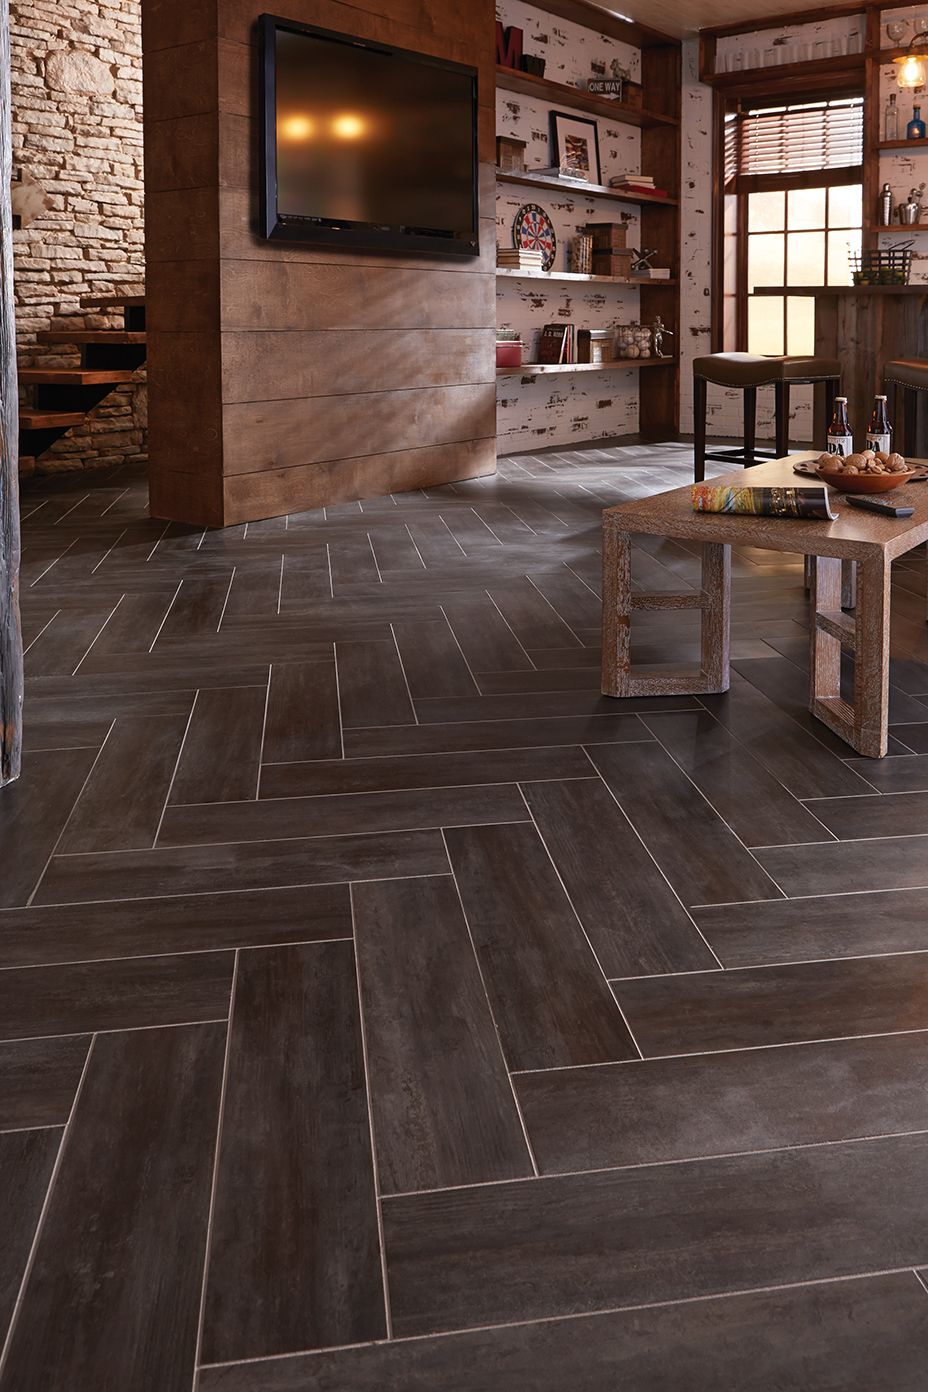 Kitchen Floor Vinyl Tiles Diy Herringbone Floor Using Peel N Stick Luxury Vinyl Tile Http